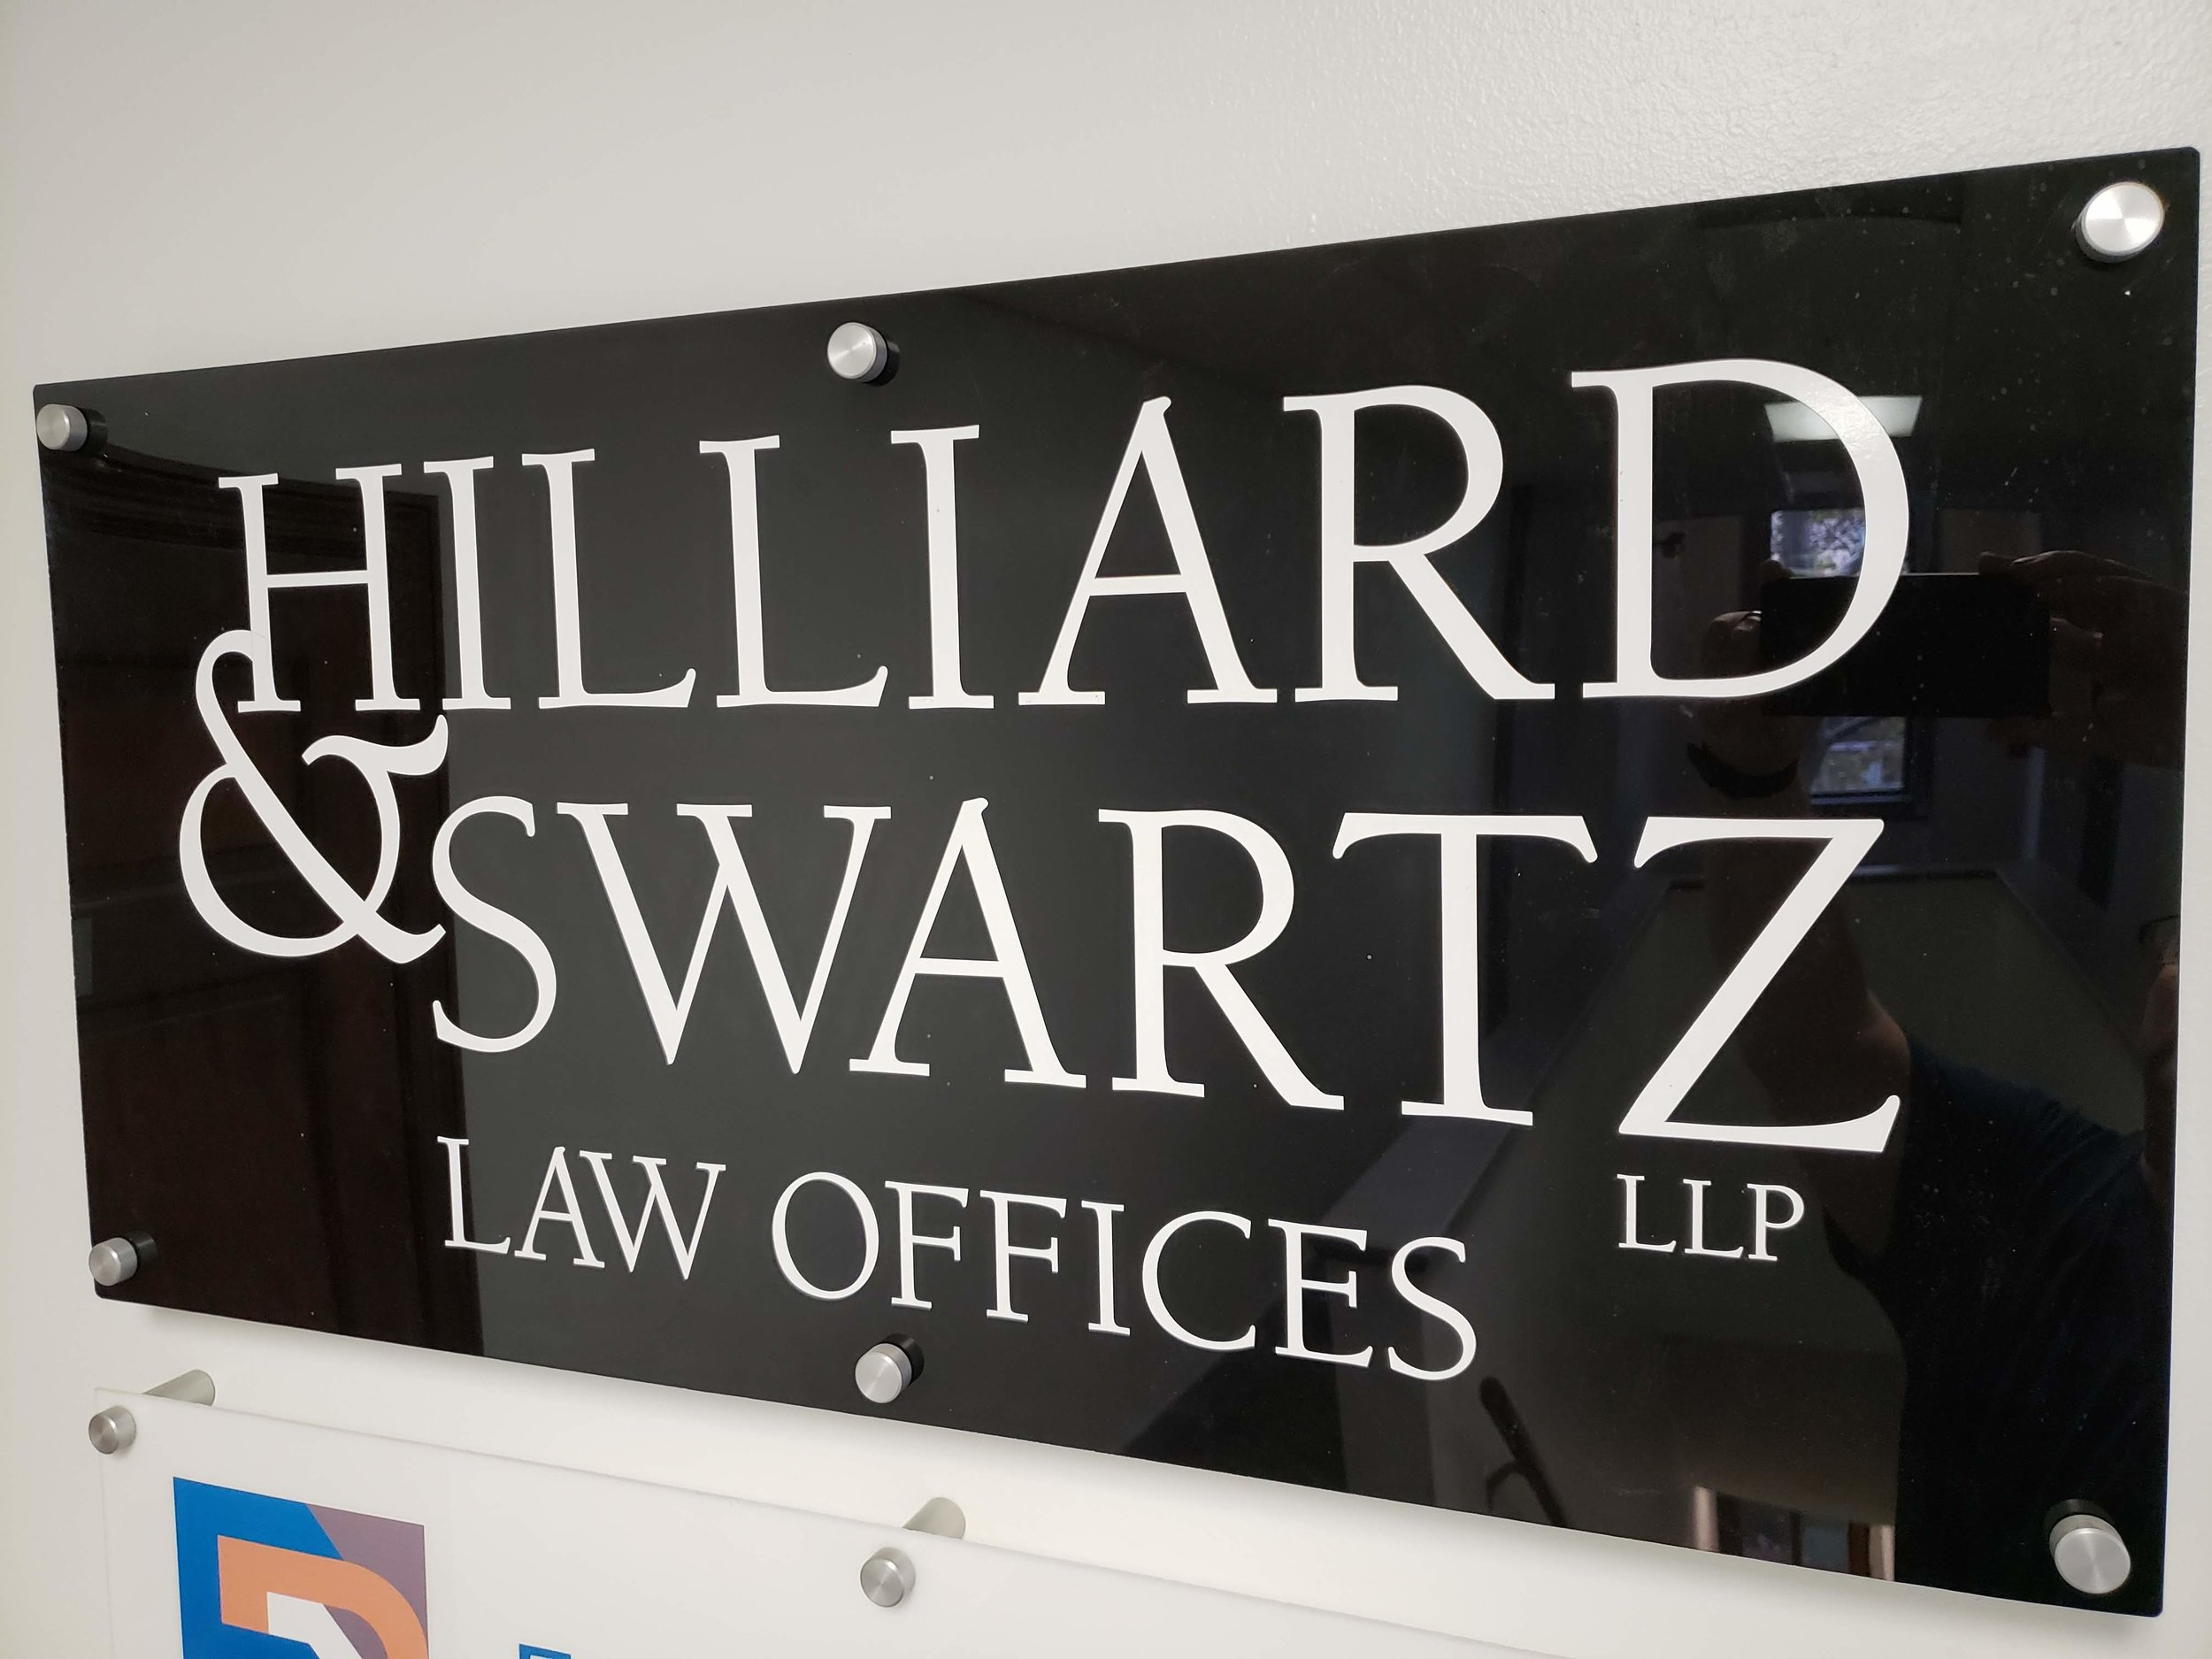 Hilliard & Swartz Law offices